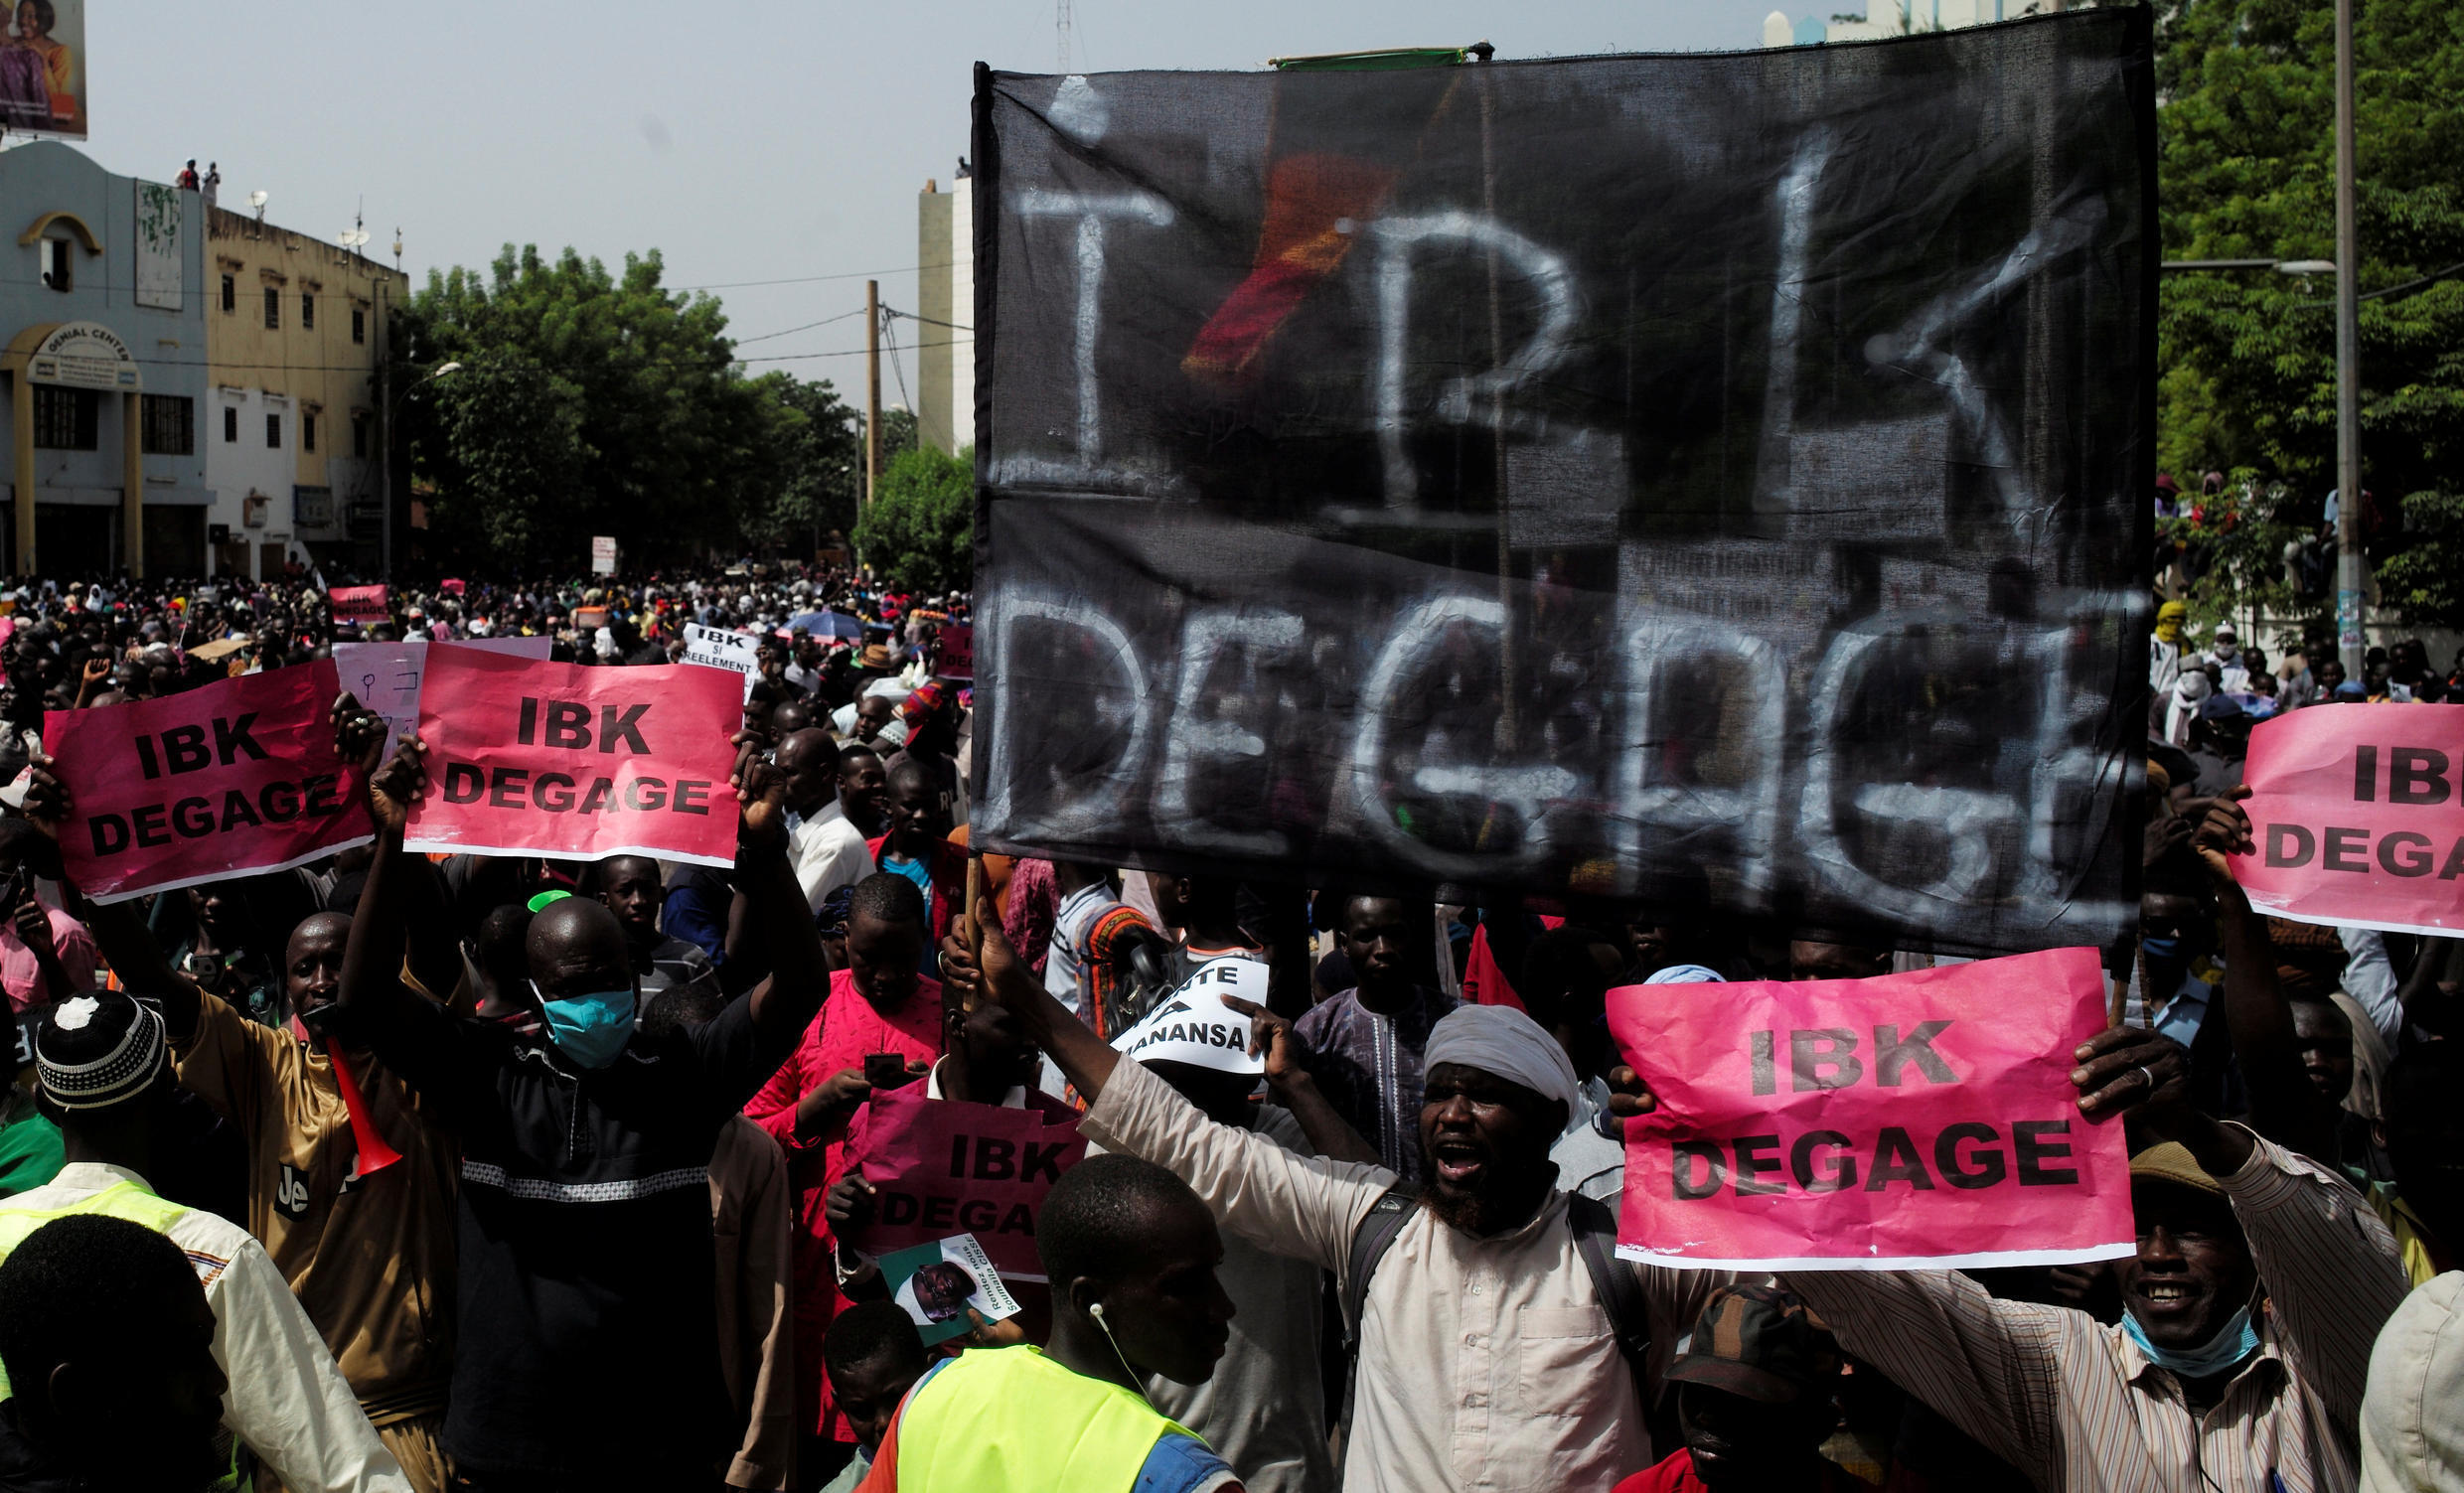 Supporters of the Imam Mahmoud Dicko attend a protest demanding the resignation of Mali's President Ibrahim Boubacar Keita at Independence Square in Bamako, Mali June 19, 2020